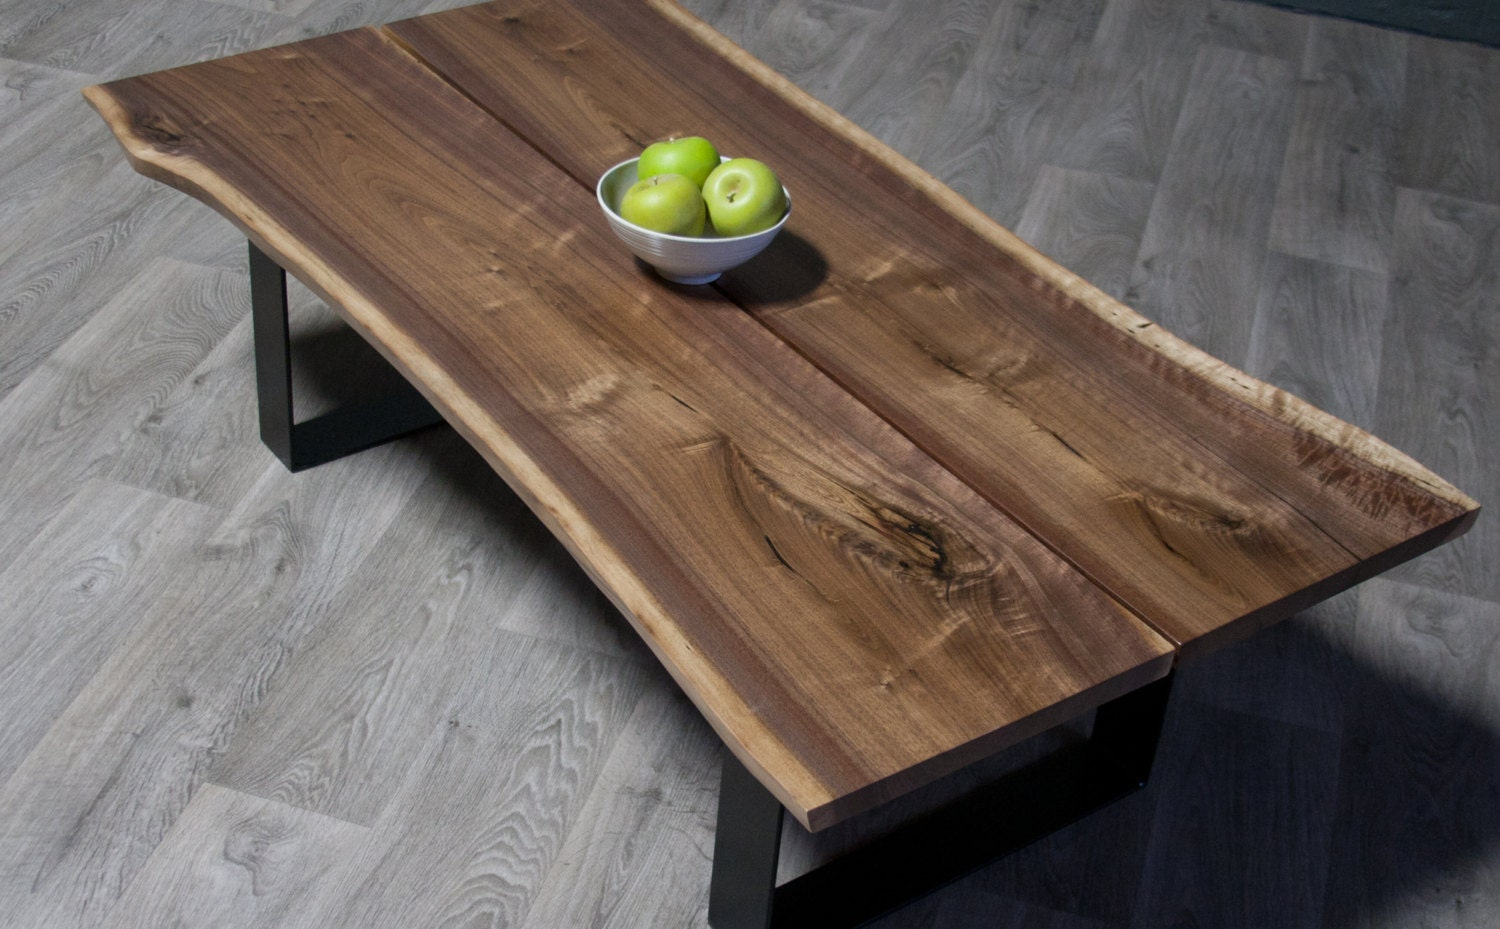 Marvelous photograph of  : Black Walnut Split COFFEE TABLE Natural Live by ElpisWorks with #848047 color and 1500x929 pixels